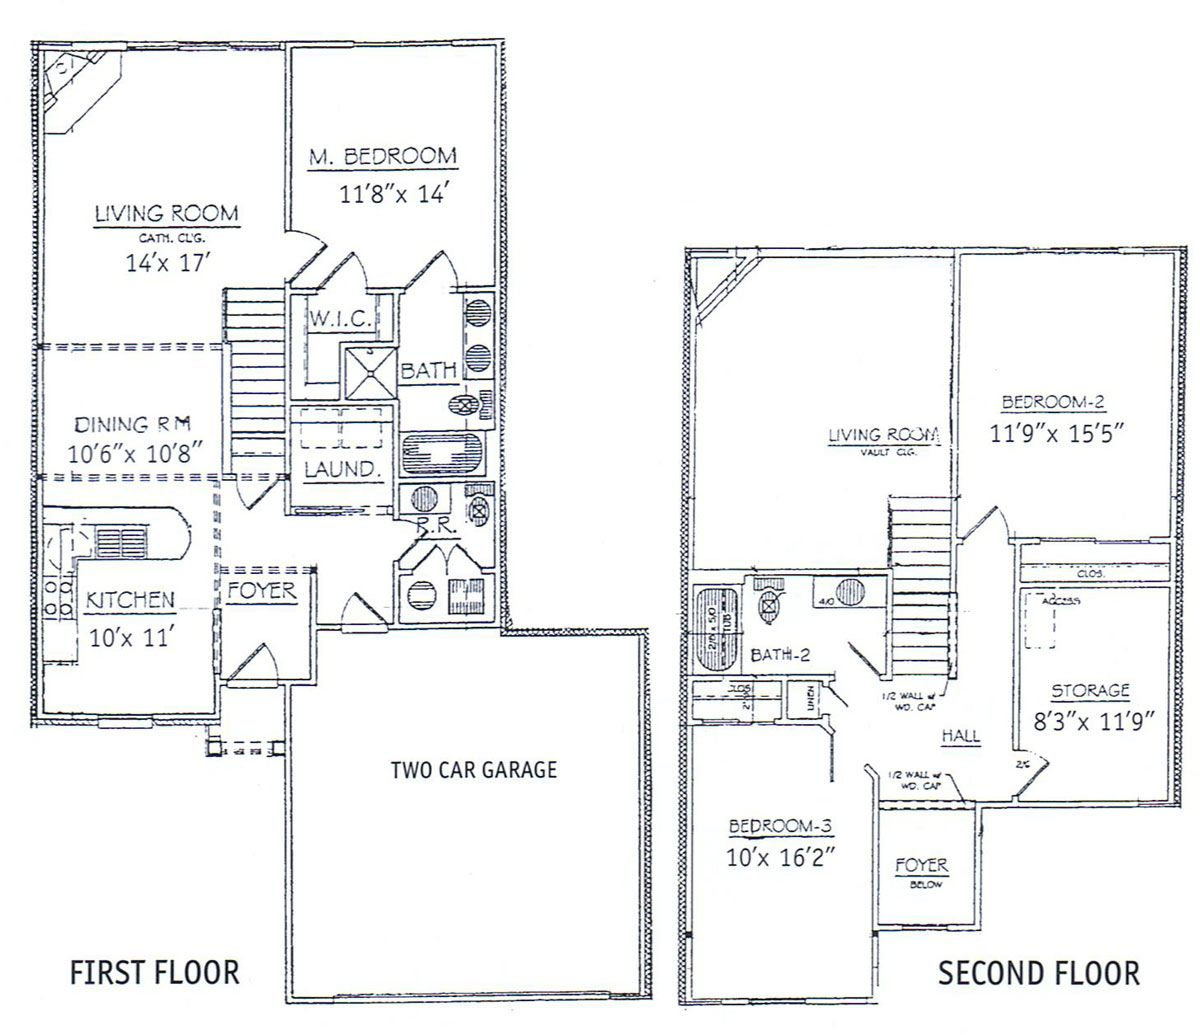 3 bedrooms floor plans 2 story bdrm basement the two for 4 bedroom townhouse floor plans